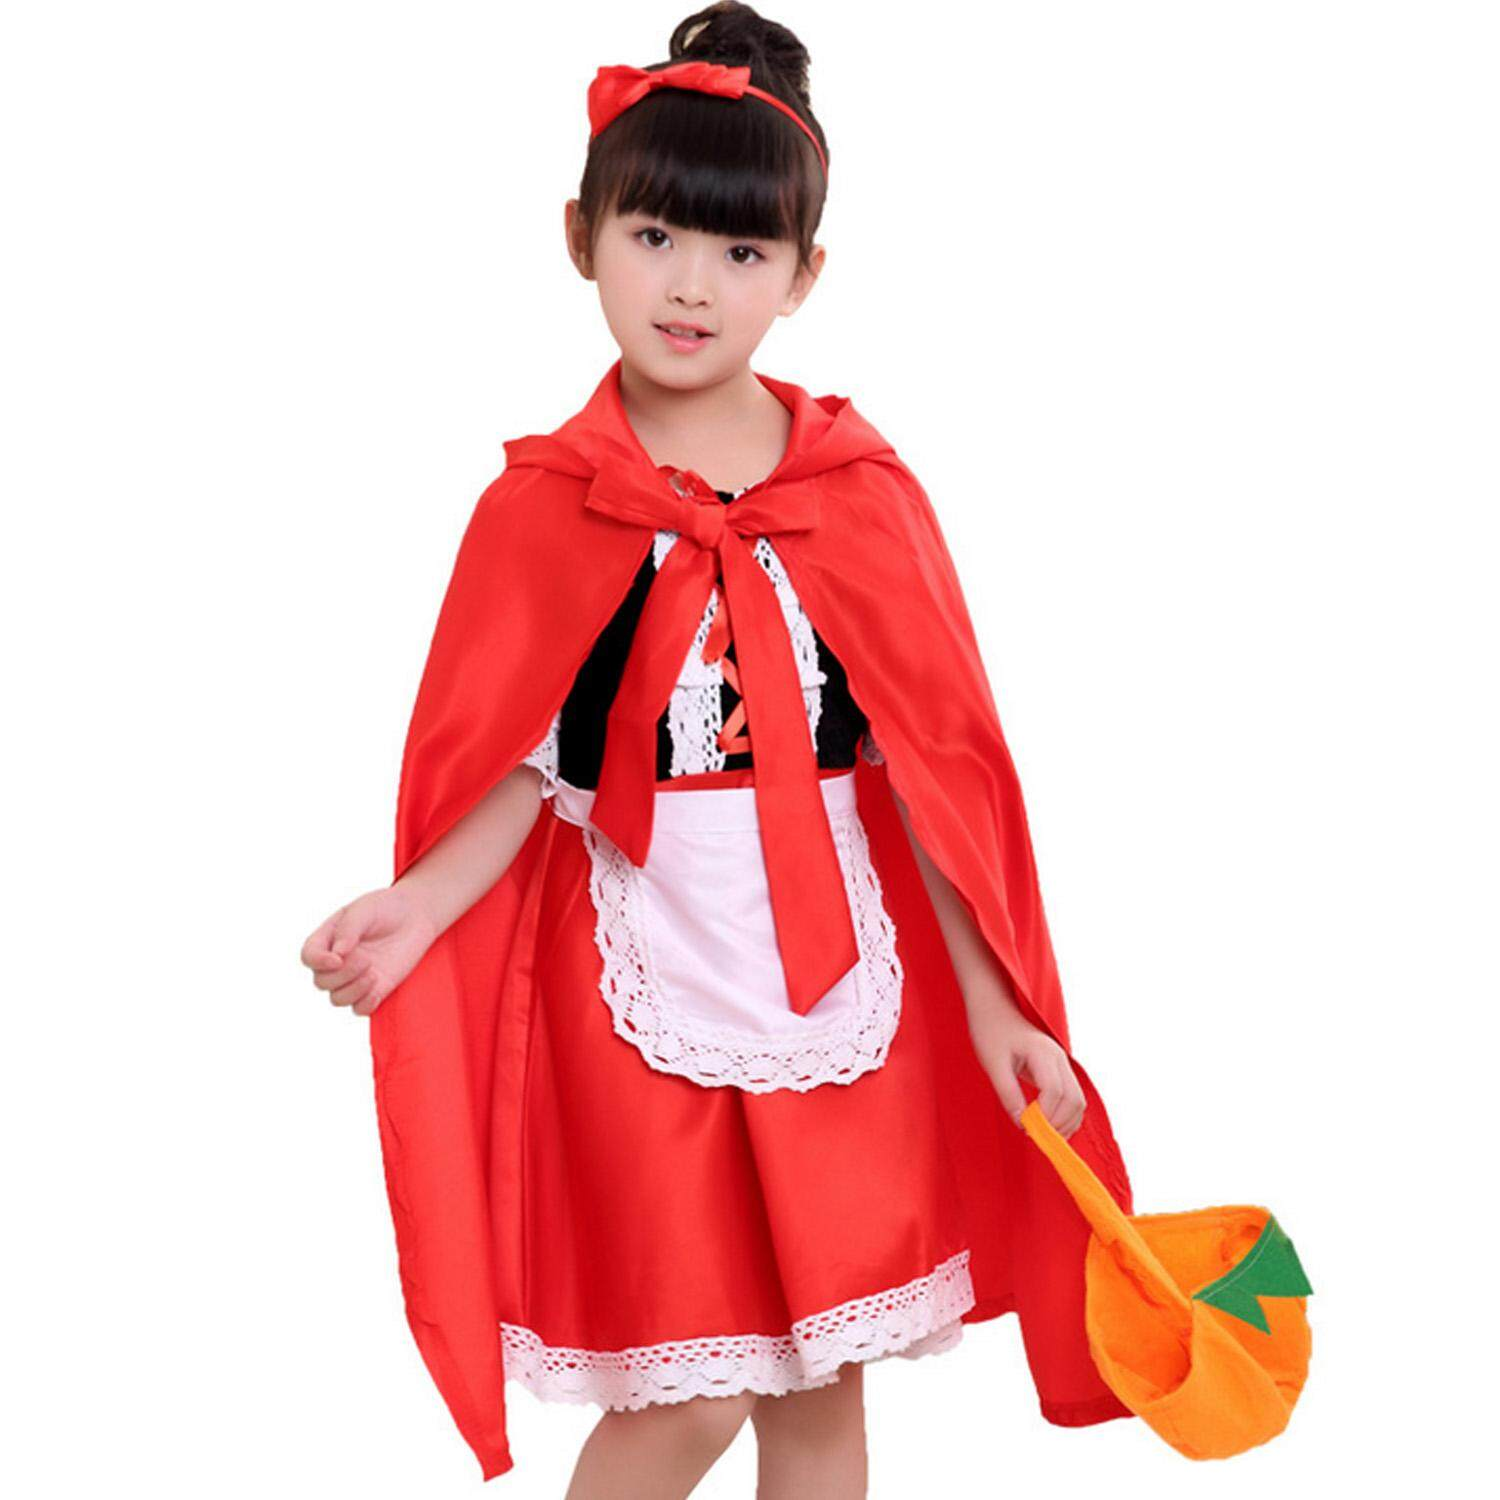 Fantasy Girls Little Red Riding Hood Costume + Pumpkin Bag + Headband for Halloween Night Festival Cosplay Costume Party 90cm Maxi Party Dress